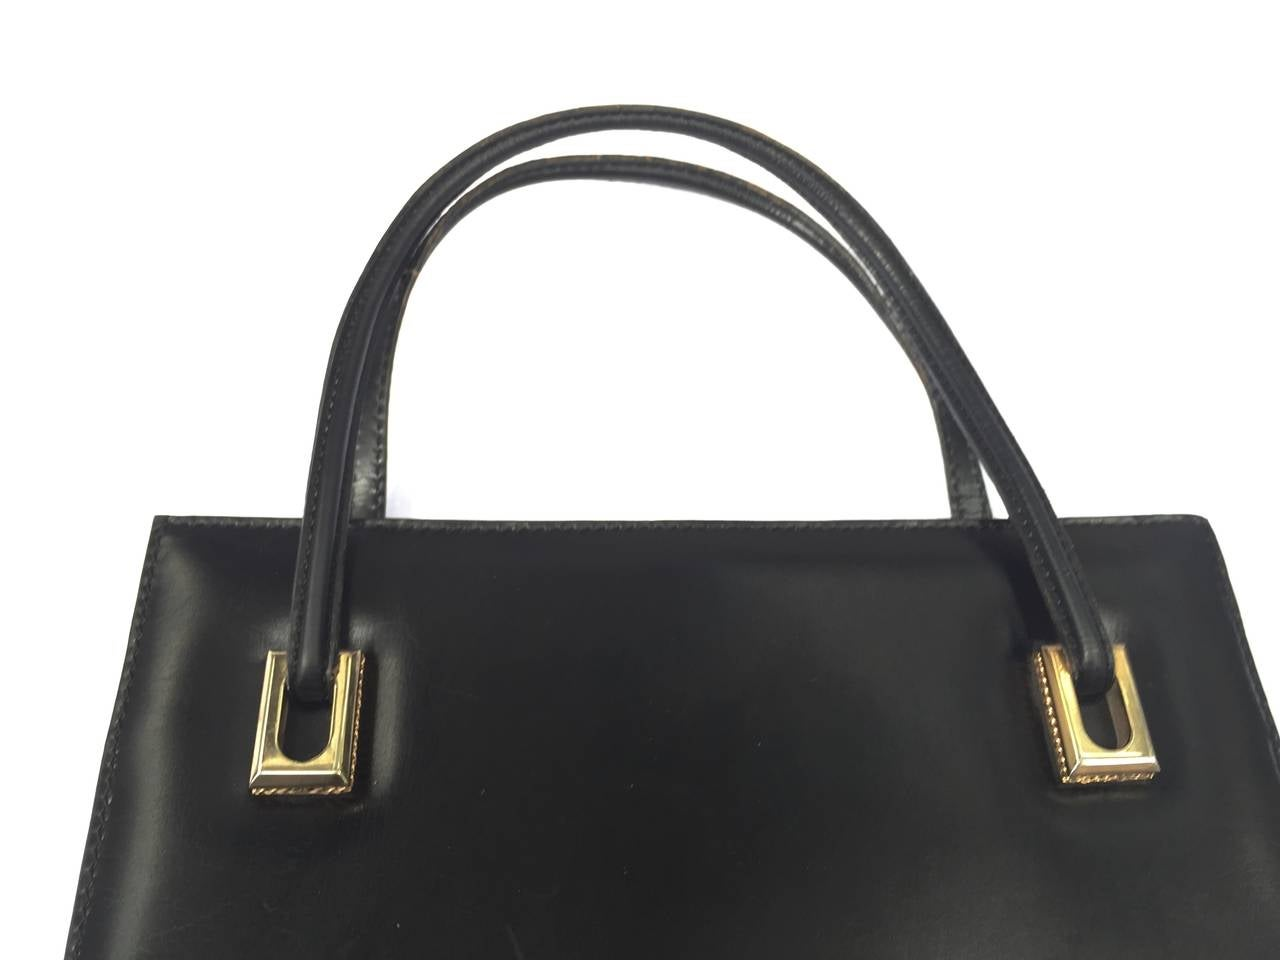 Loewe 60s black leather handbag. 3